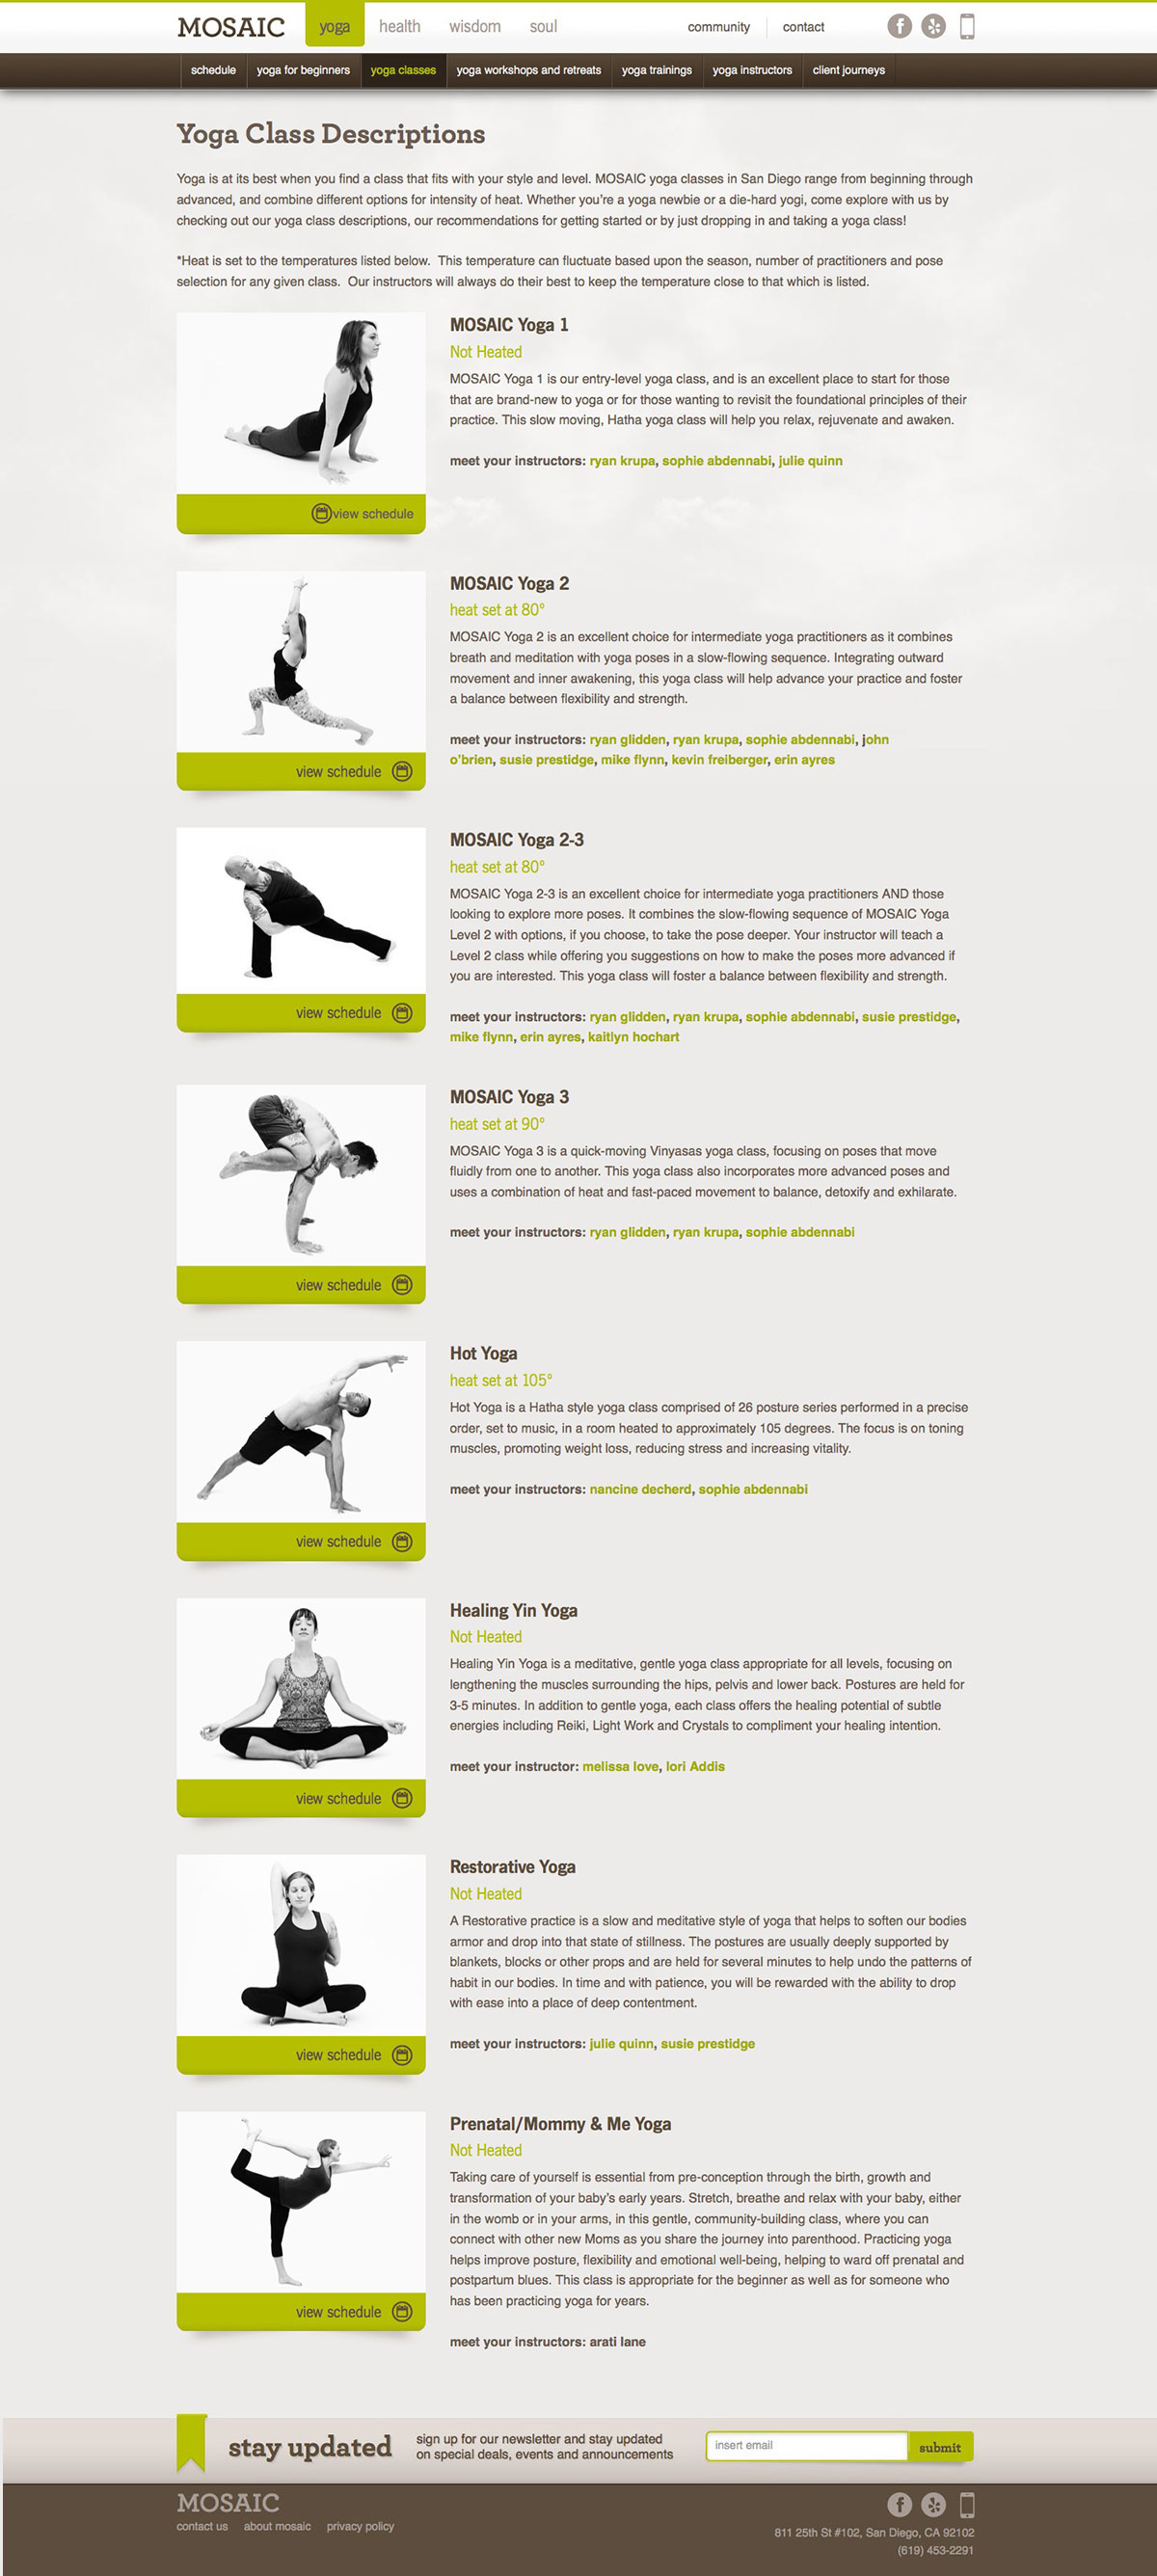 ignyte website design agency yoga classes